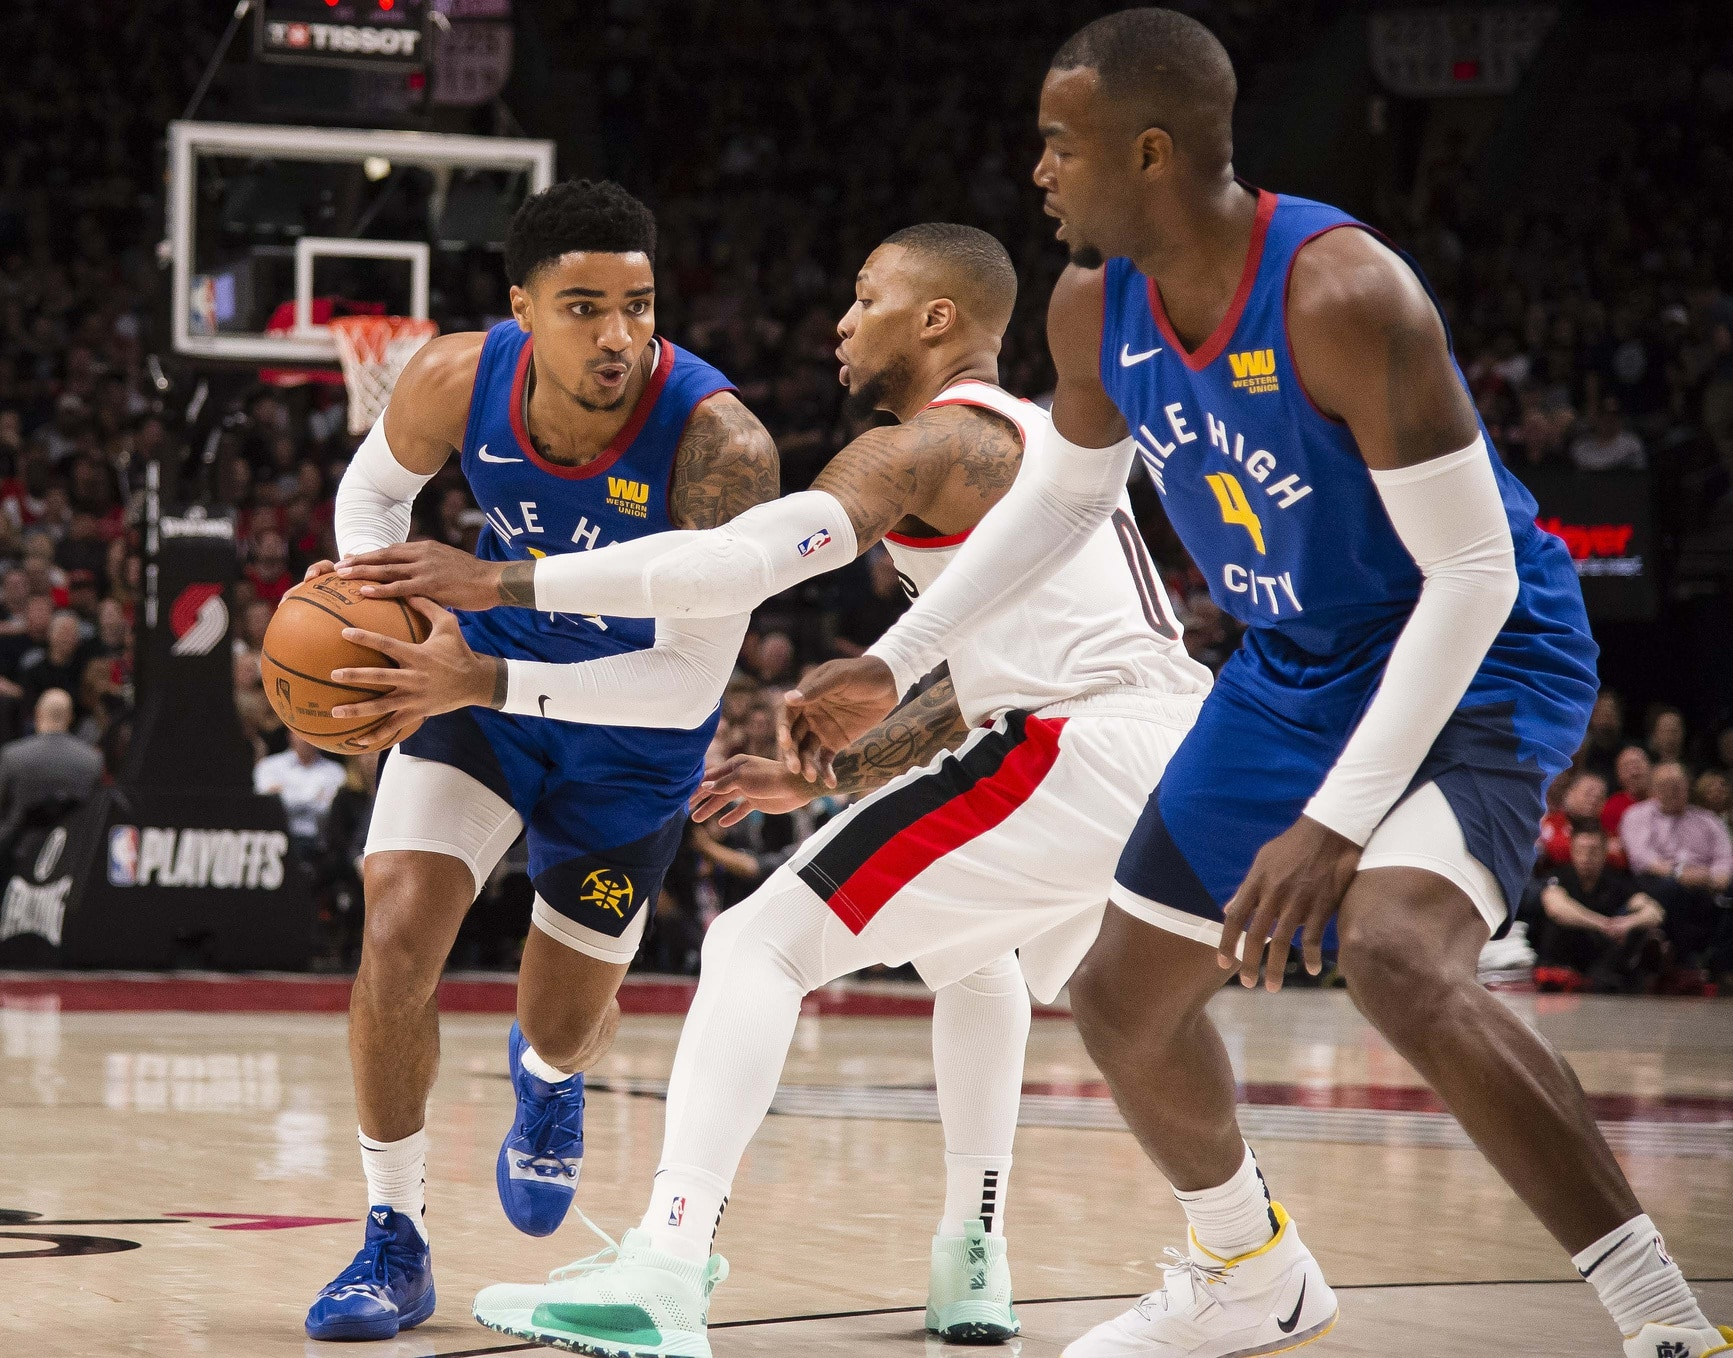 868d0c94729 Takeaways from Nuggets-Blazers Game 6